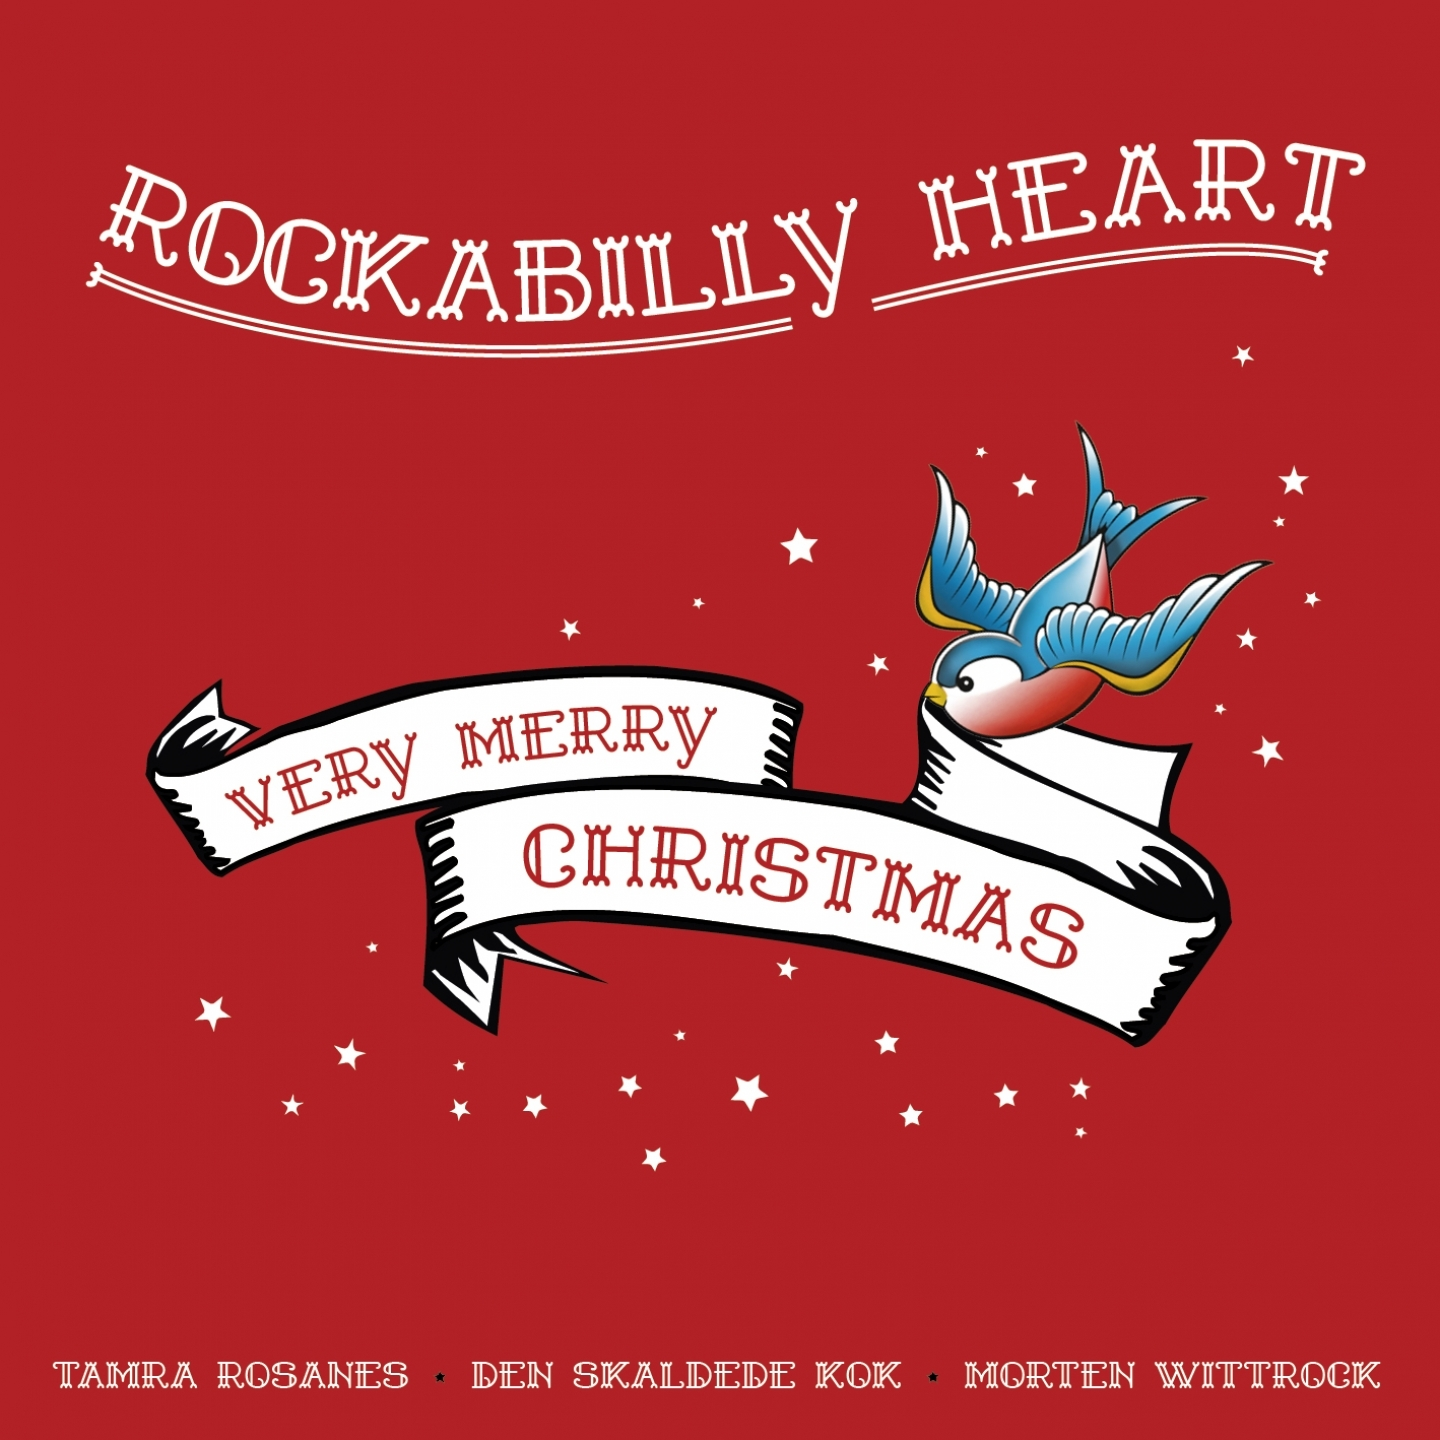 Rockabilly Heart – 'Very Merry Christmas' (Single)